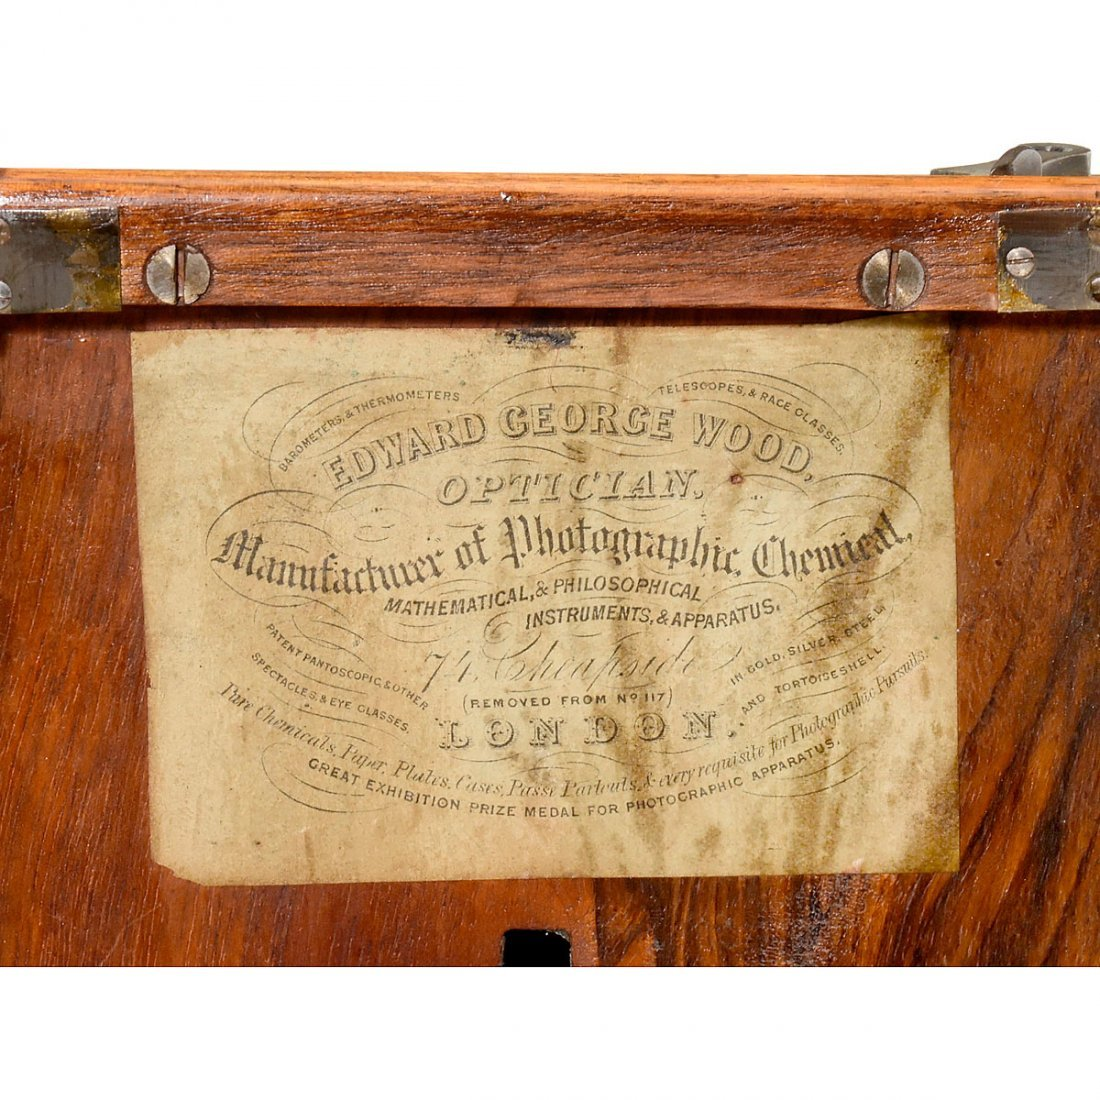 Stereo Graphoscope by E.G. Wood, c. 1870 - 2